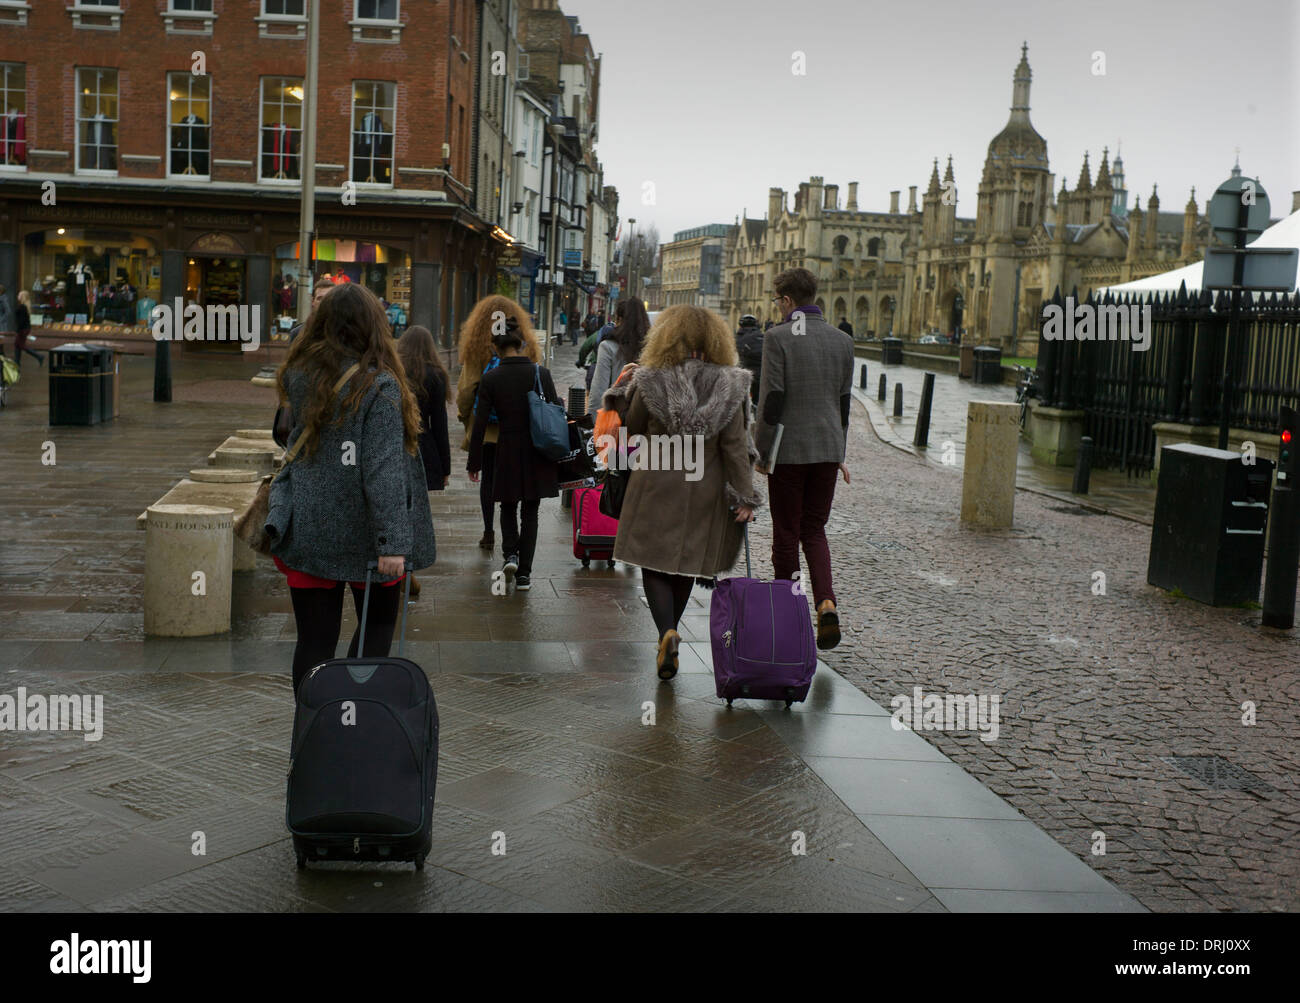 Cambridge University Students arrive back at University after Christmas break. Cambridge, England, UK 25-1-2014 - Stock Image